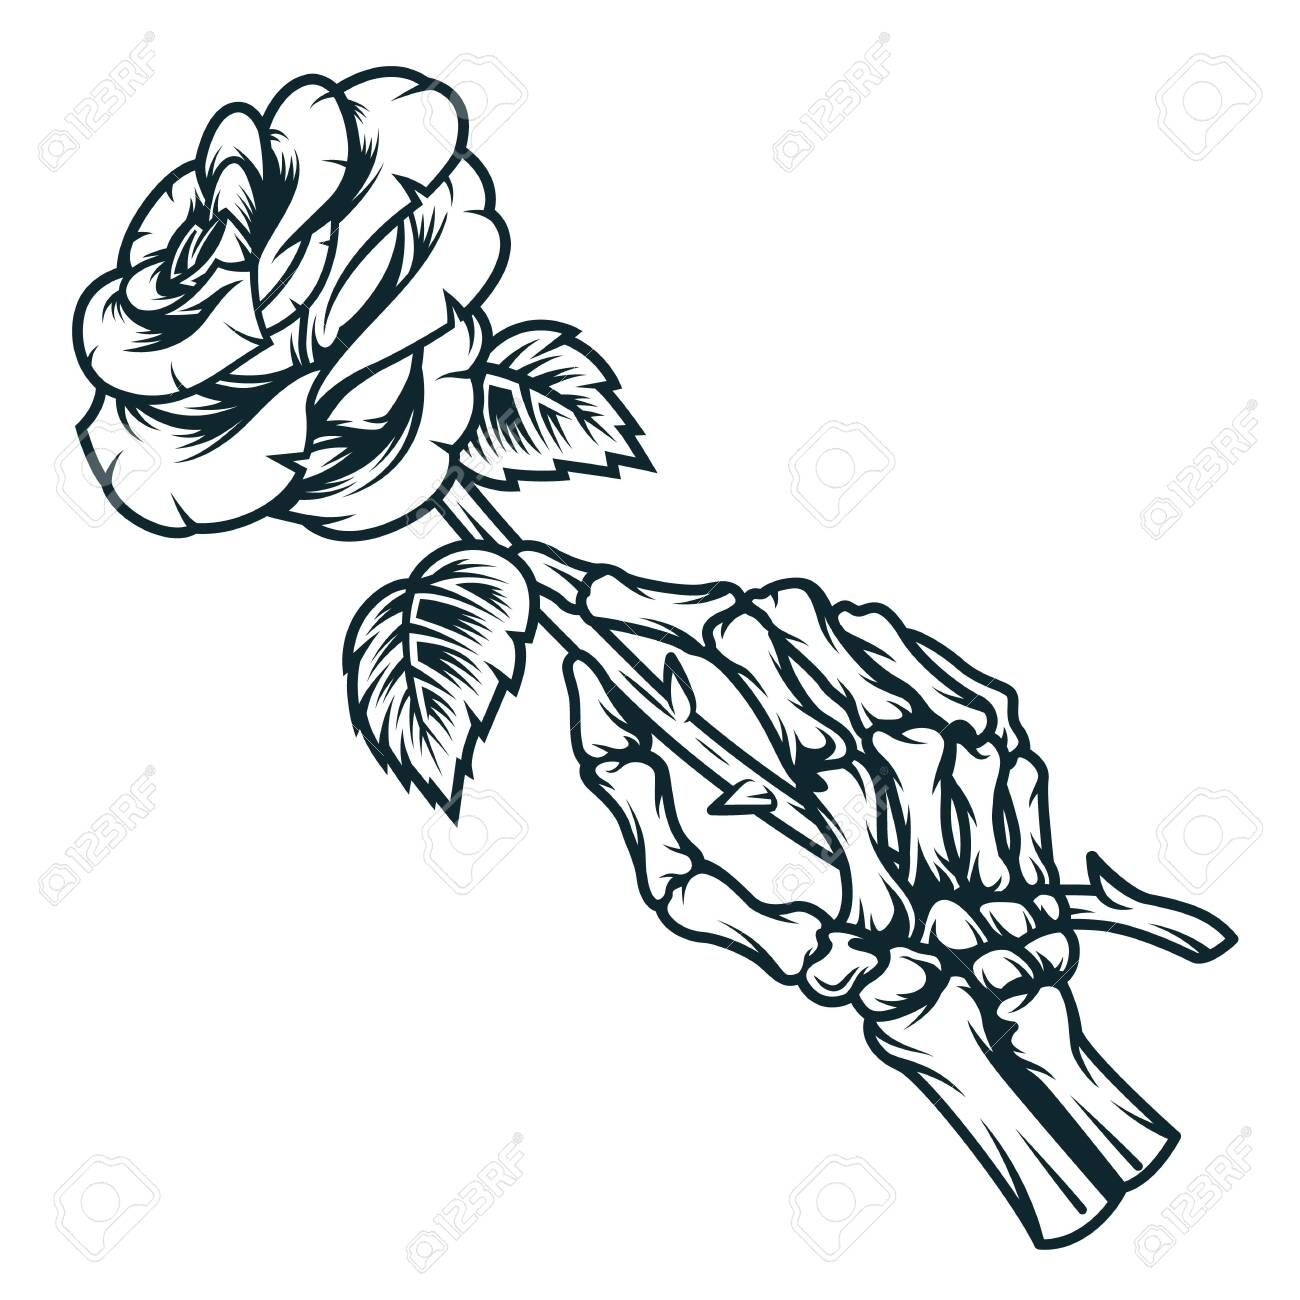 Skeleton Hand Holding Rose Flower In Vintage Monochrome Style Isolated Vector Illustration Illustration Aff Hand Holding Rose Hand Tattoos How To Draw Hands